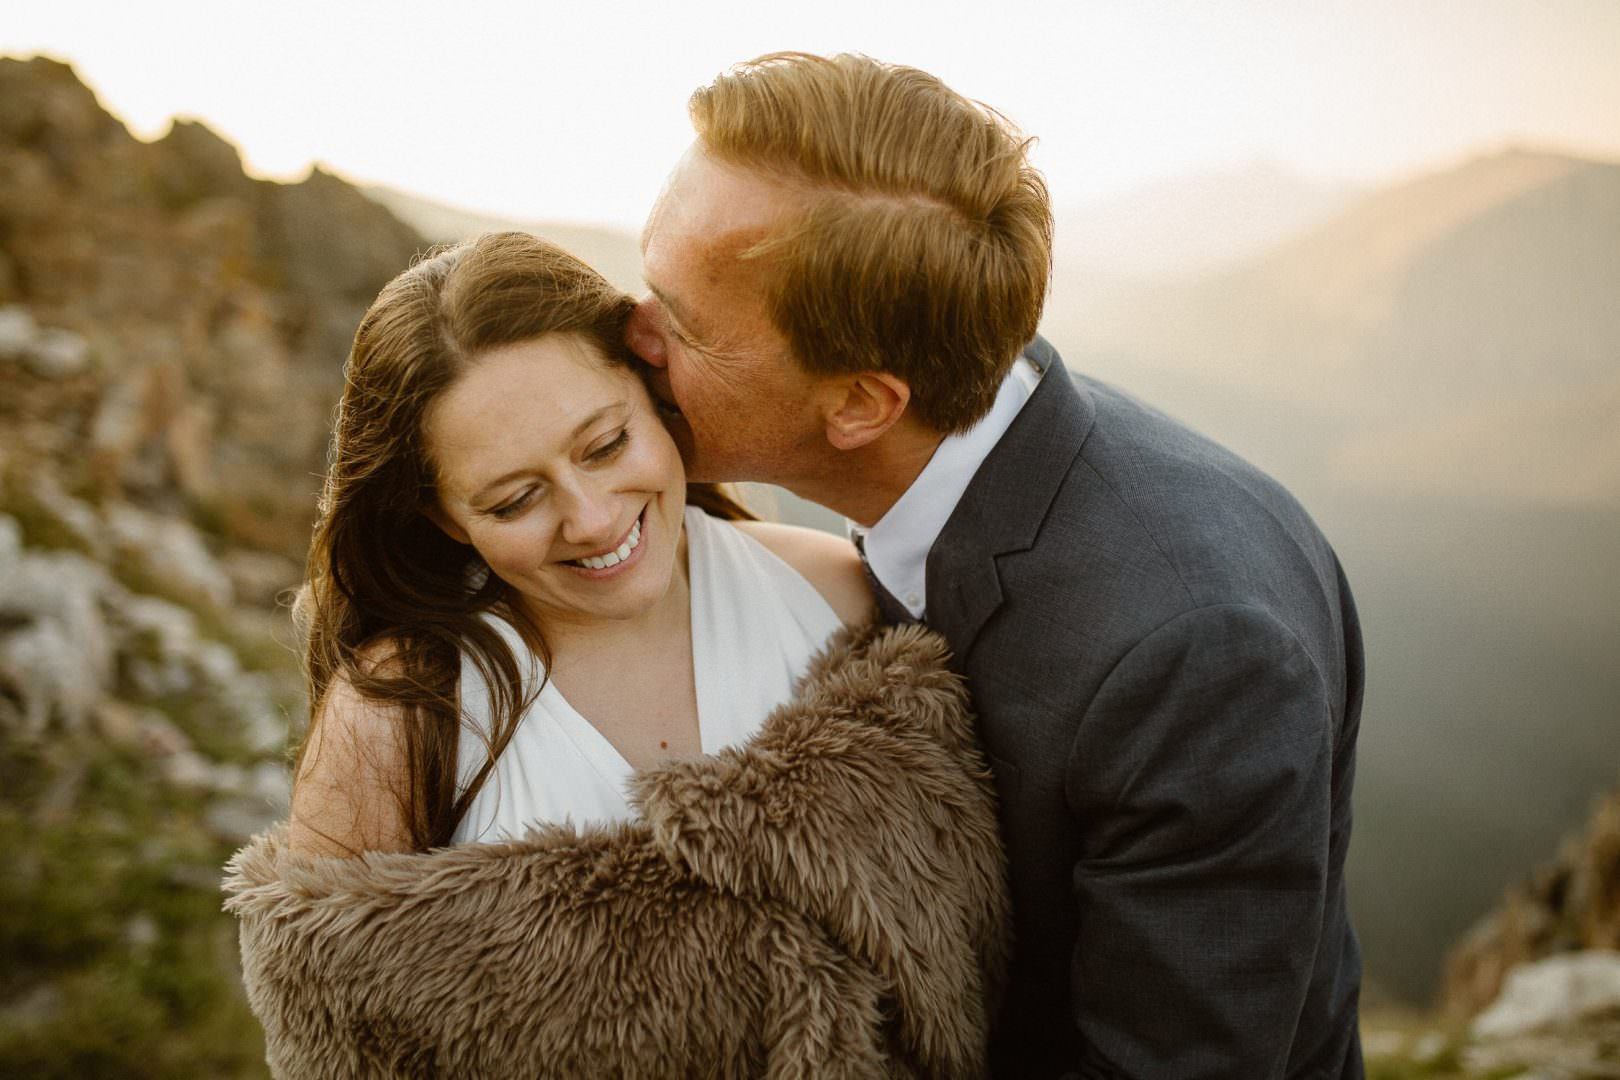 August is a great time for an adventure elopement in Colorado. Colorado Intimate Weddings and Adventure Elopement Photographer | Rocky Mountain National Park Wedding Photographer | Adventure